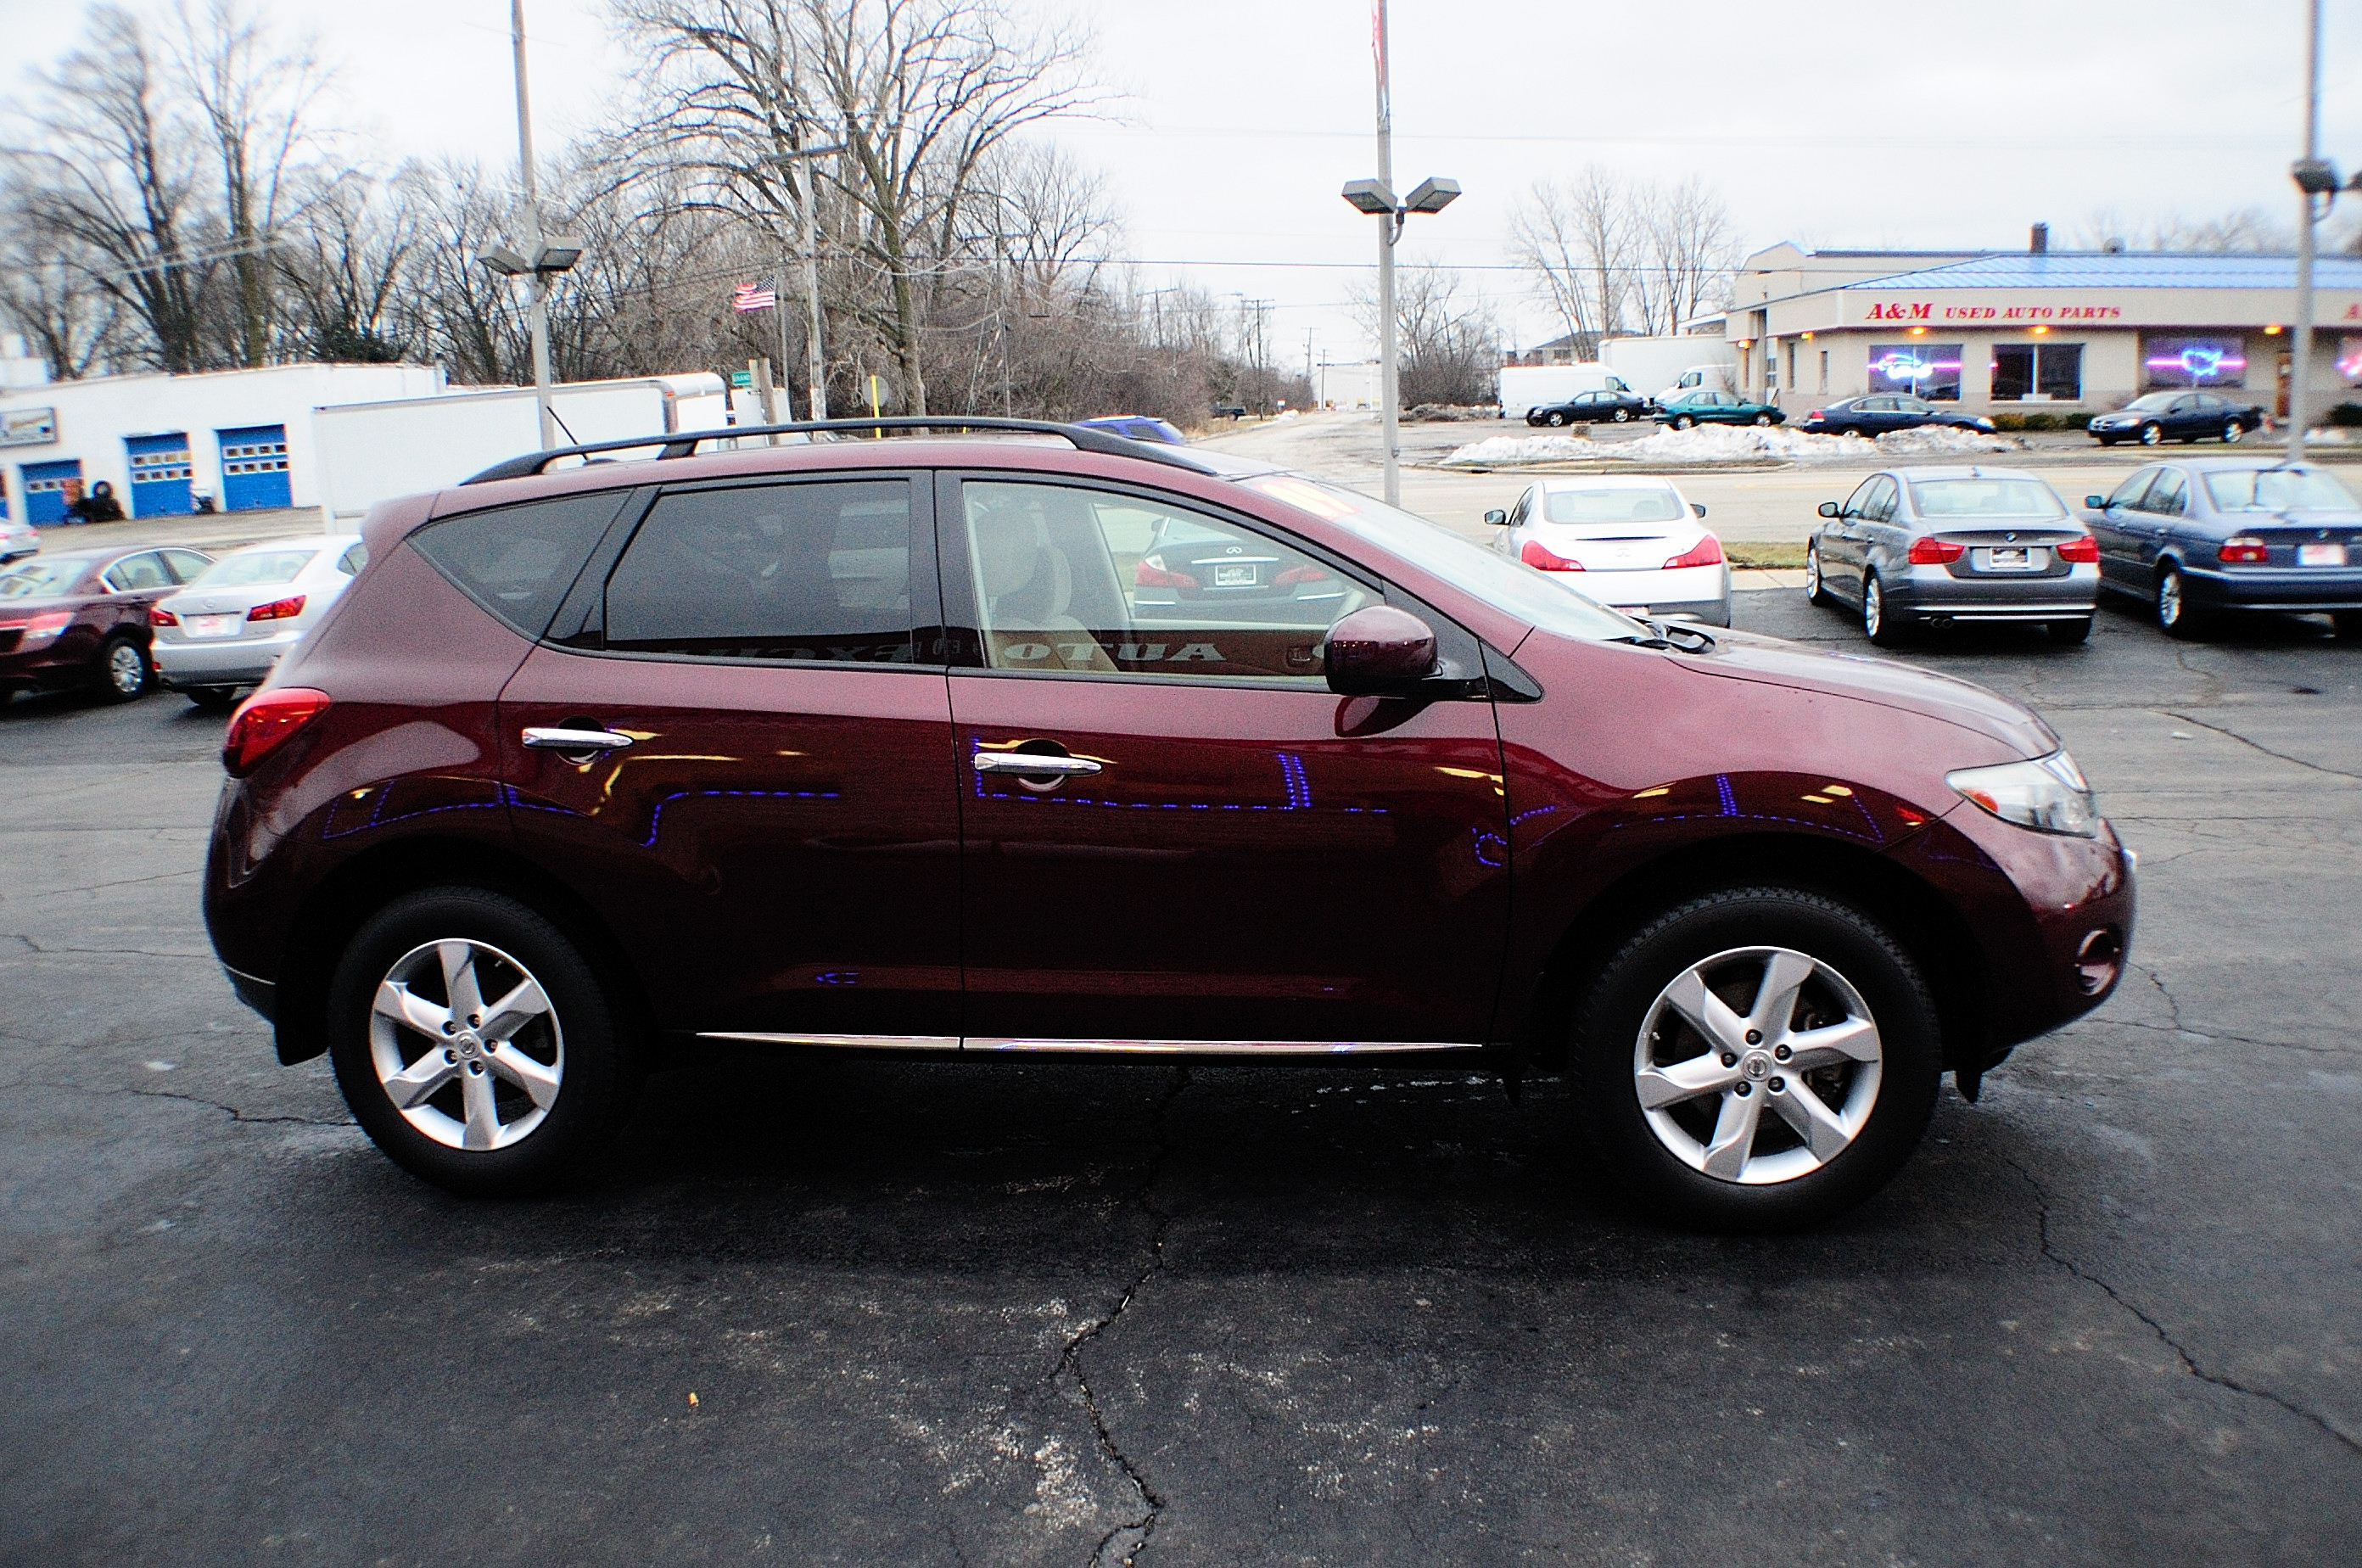 2009 nissan murano sl burgundy sport used suv sale 2009 nissan murano sl burgundy sport used suv sale bannockburn barrington beach park vanachro Image collections